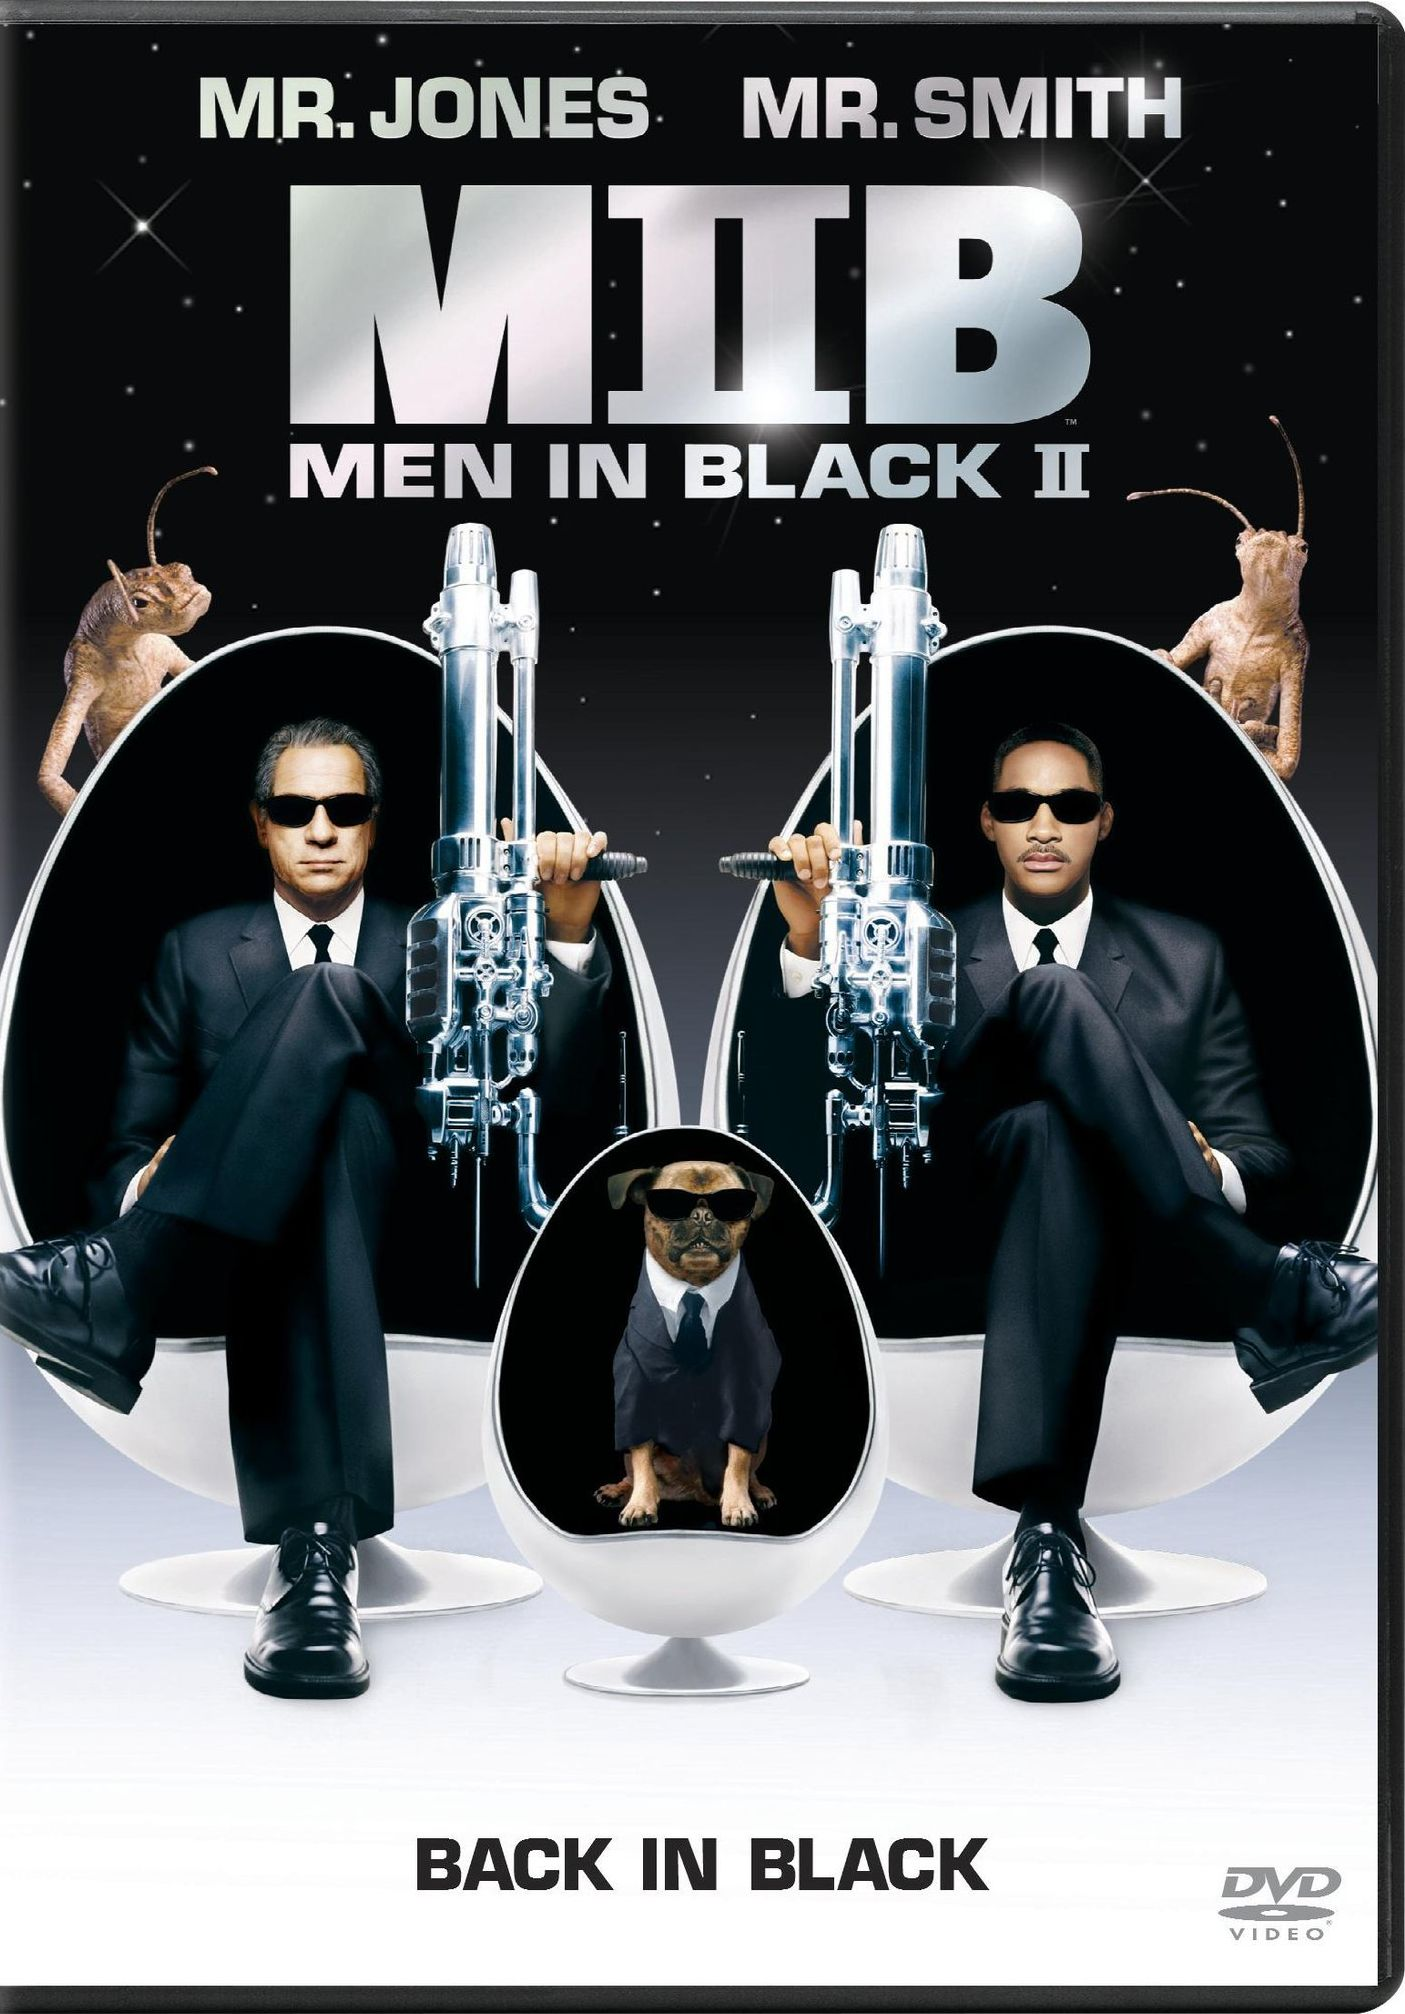 Men in Black II (2002) Trailer 2 (VHS Capture)